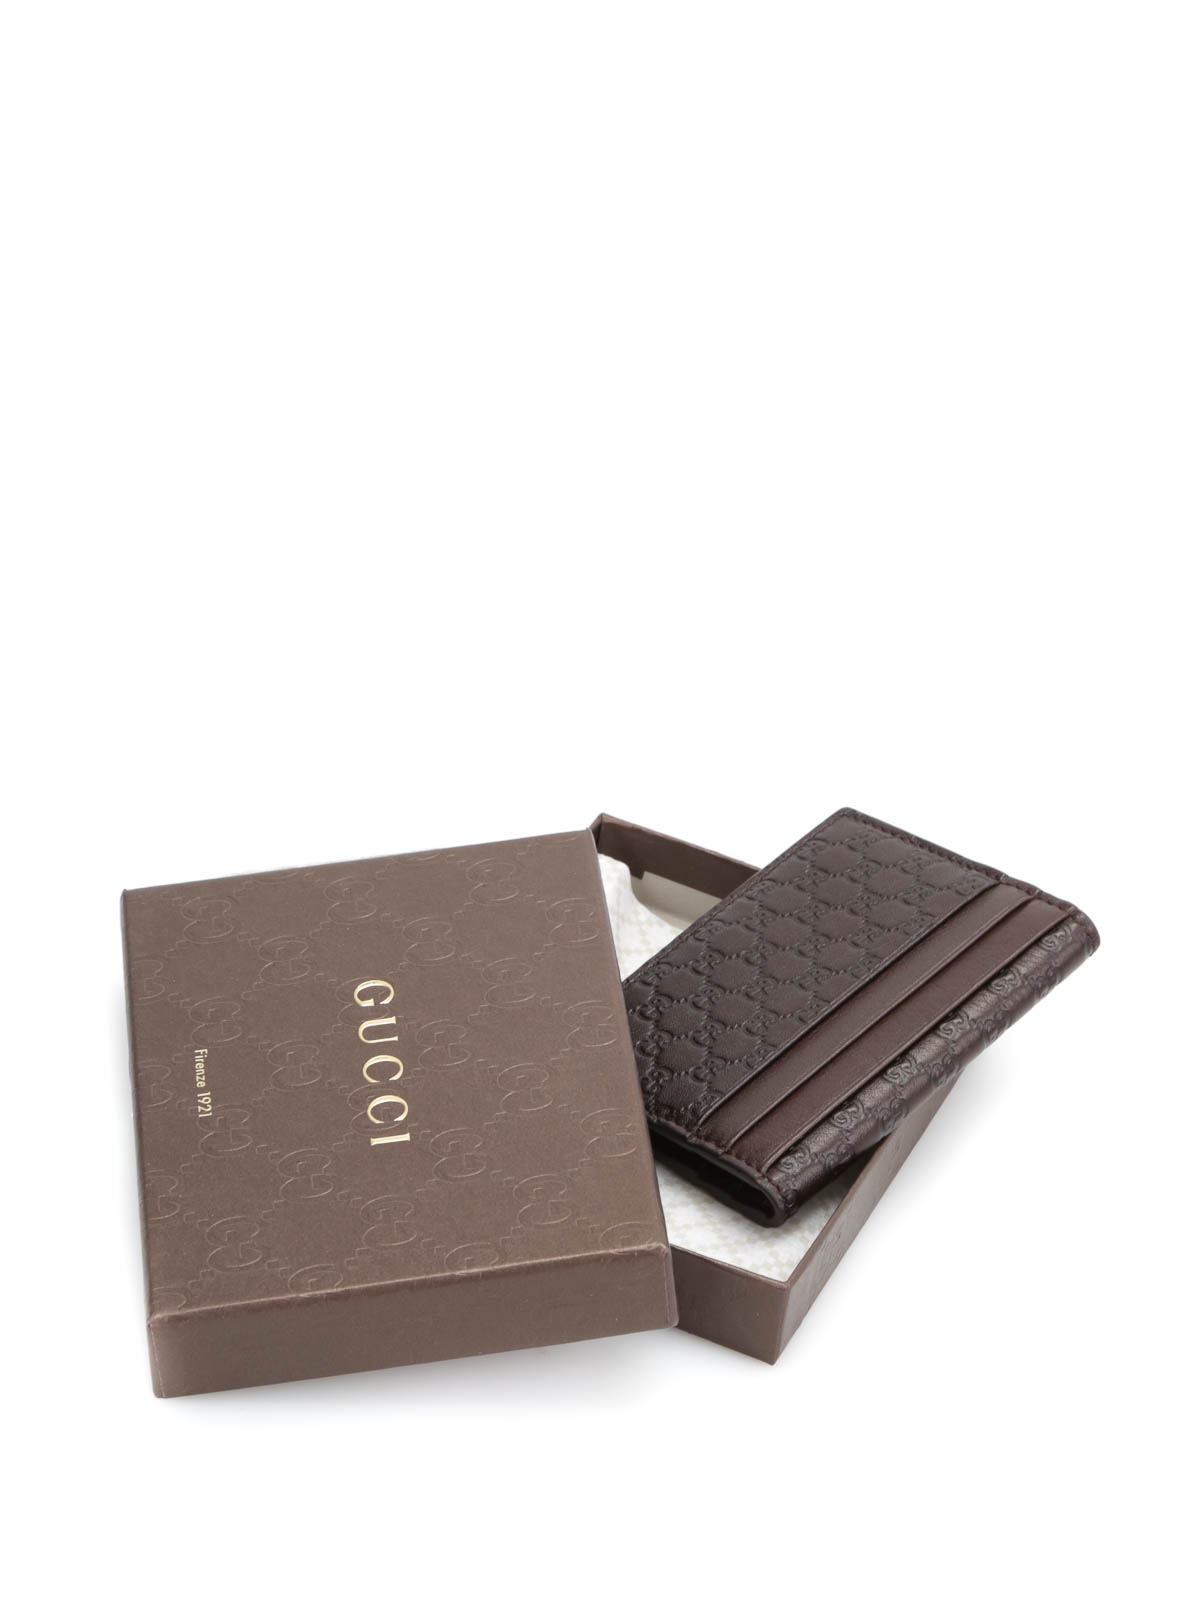 Microguccissima leather card case by Gucci - wallets & purses | Shop ...